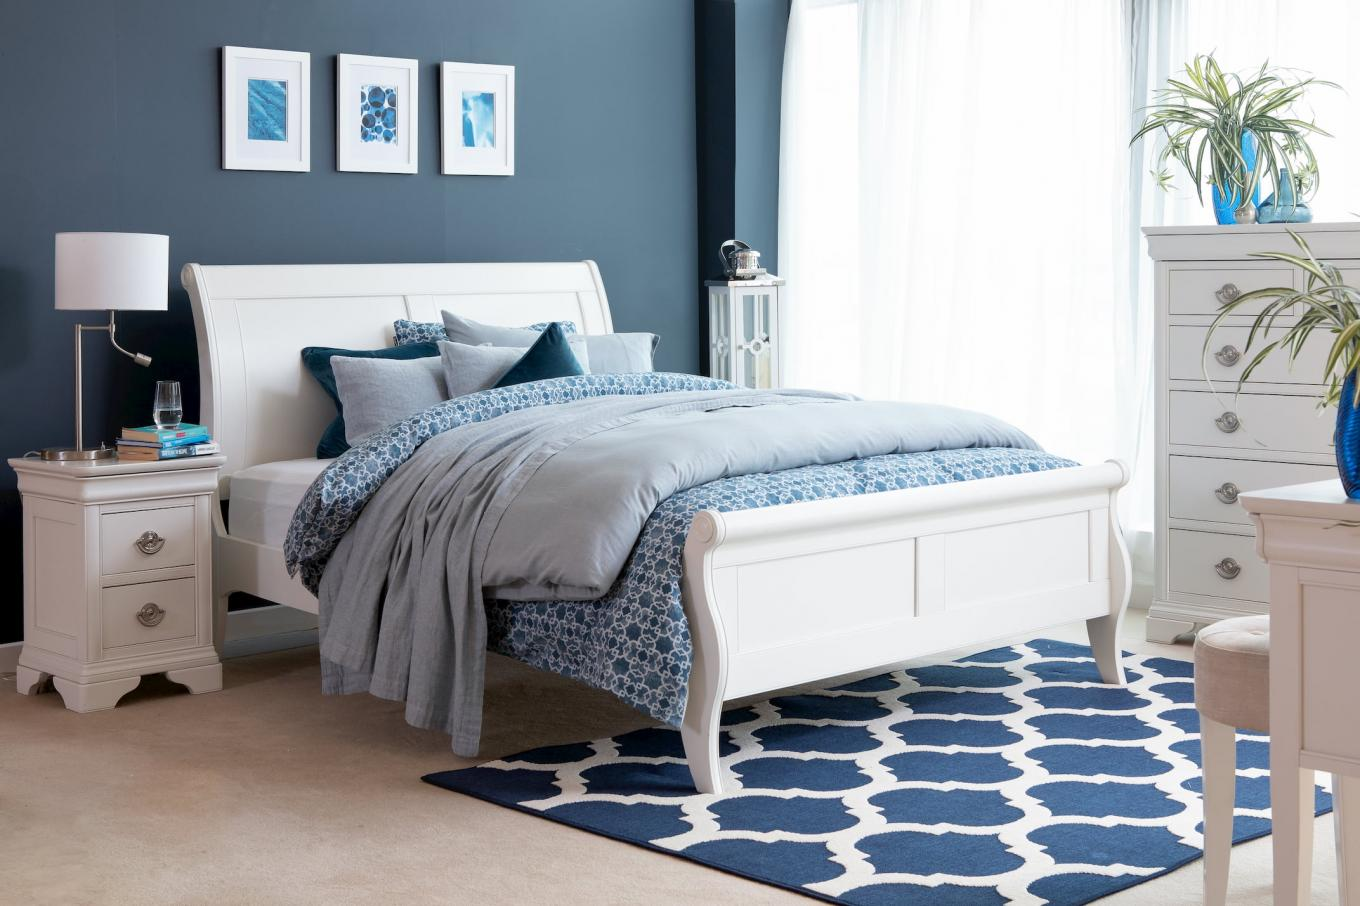 6ft Chantilly Bed Lookbook